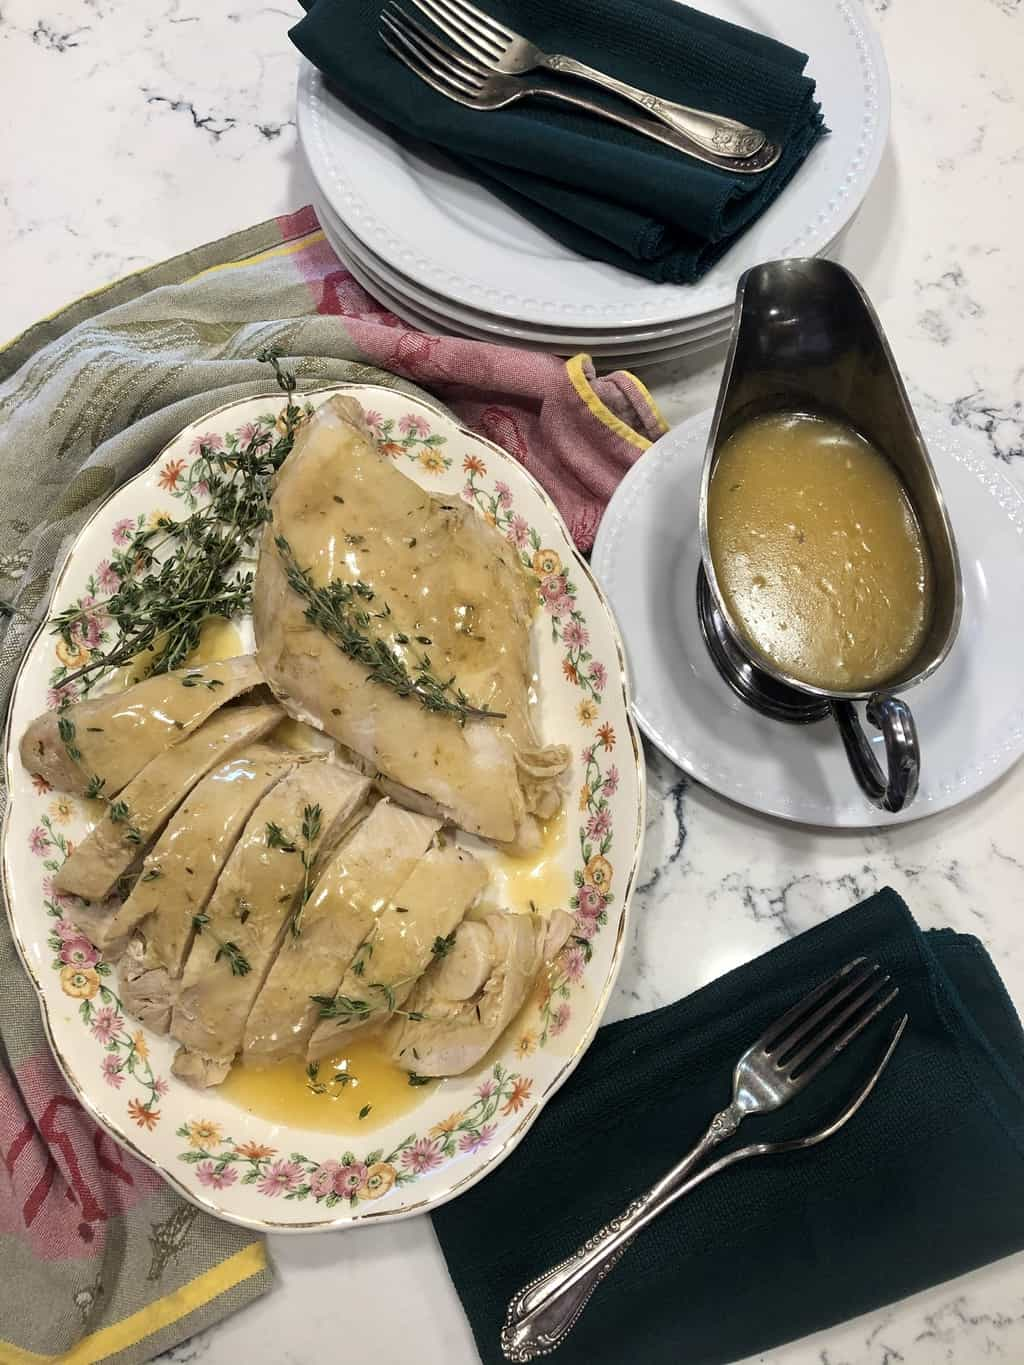 Slow-Cooker Turkey Breast with Gravy. Bone-in, skin-on turkey breast seasoned with flavored butter, cooked in a slow-cooker on a bed of fresh fruit, vegetables, herbs, and white wine. The flavorful cooking stock is thickened for gravy.